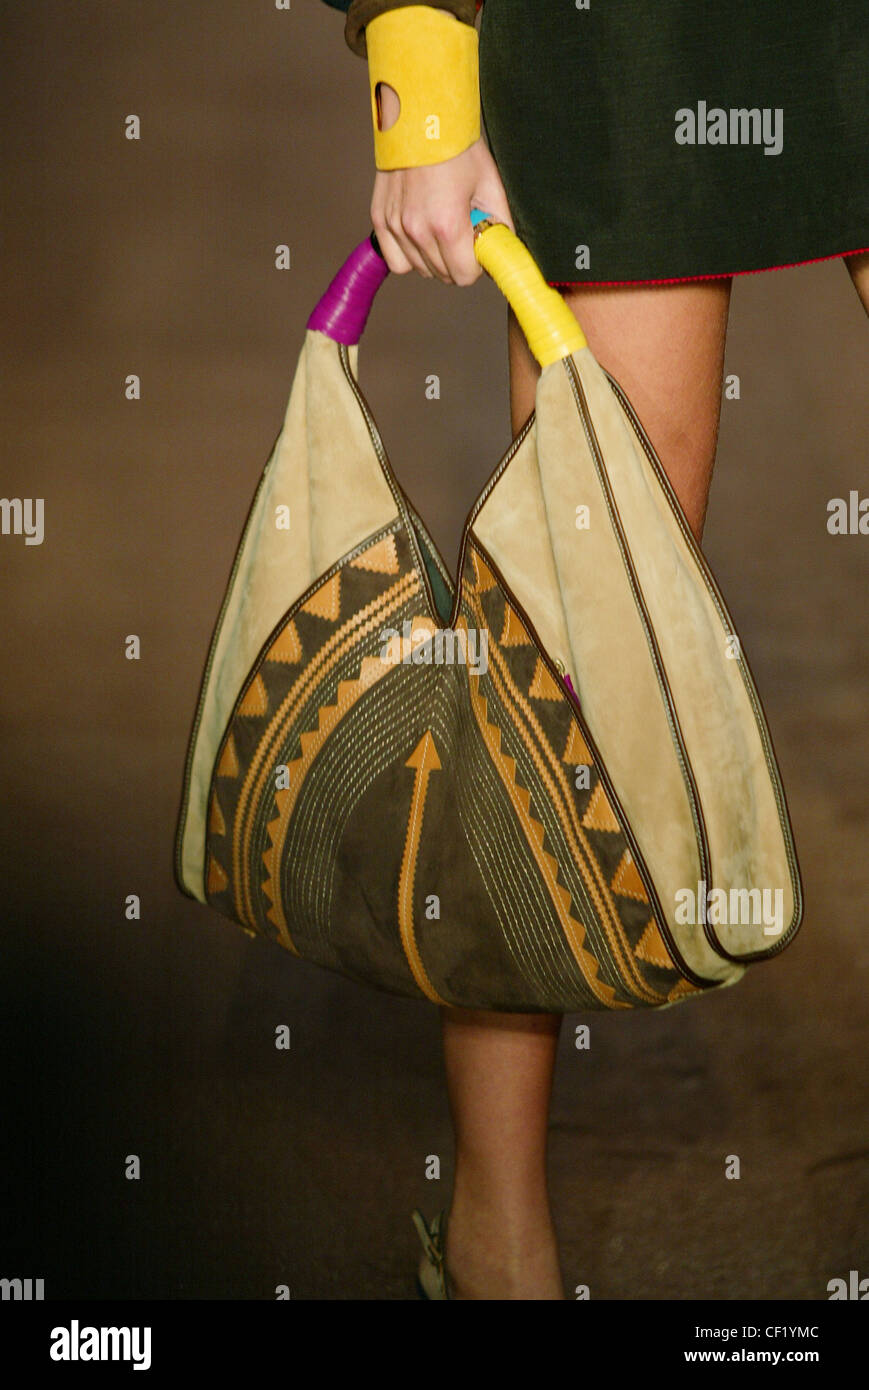 e287ebdac5a Costume National Paris Spring Summer Close up of models hand yellow cuff  holding purple and yellow leather wrapped around